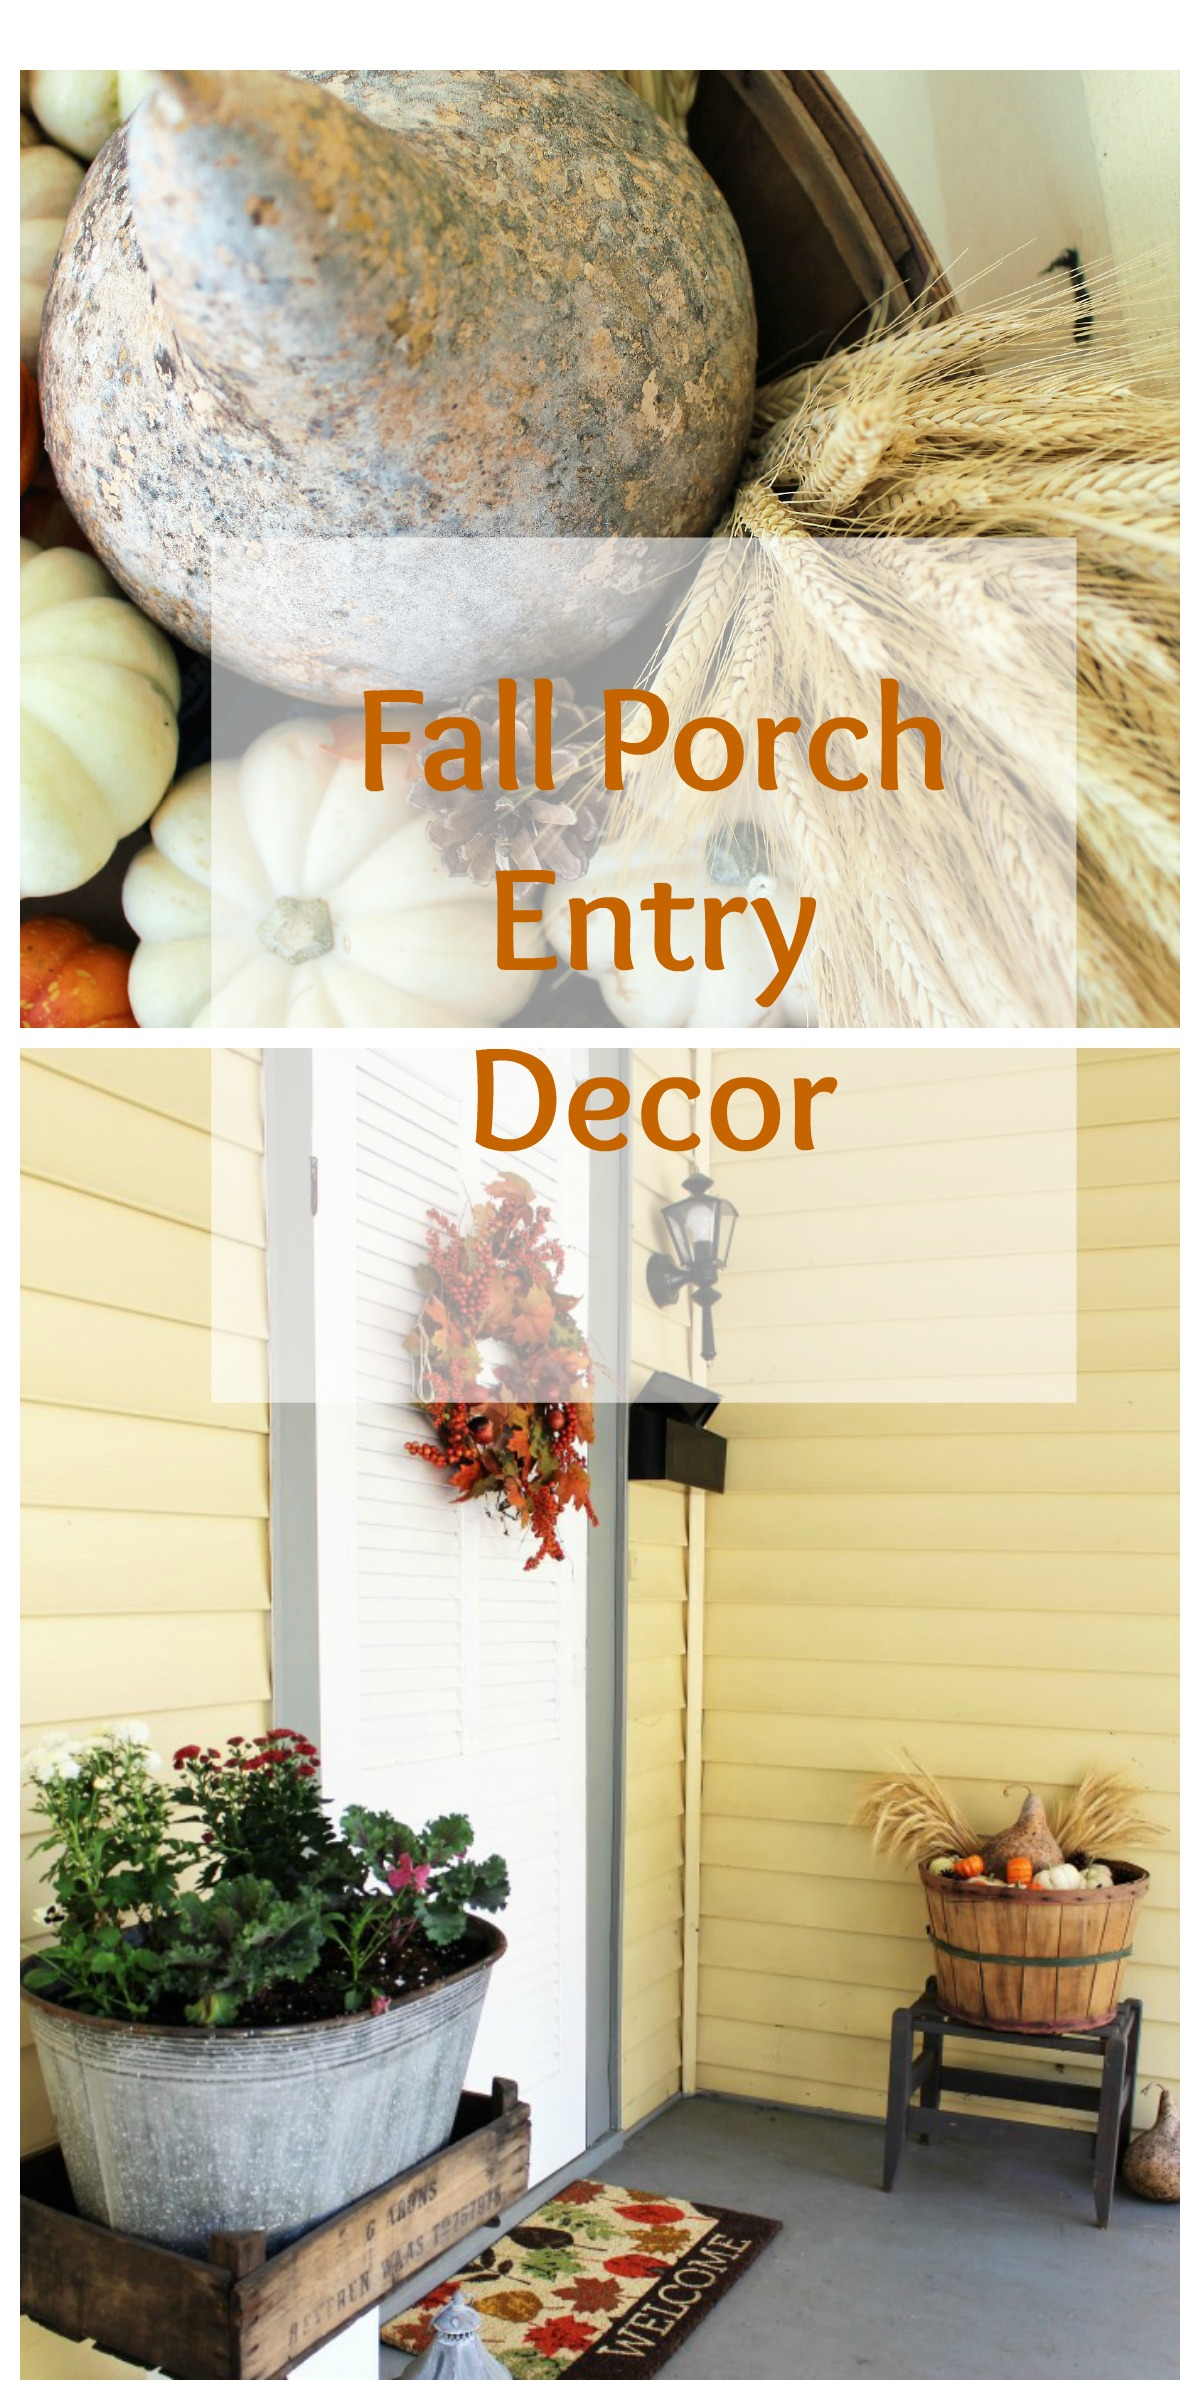 Fall Porch Entry Collage